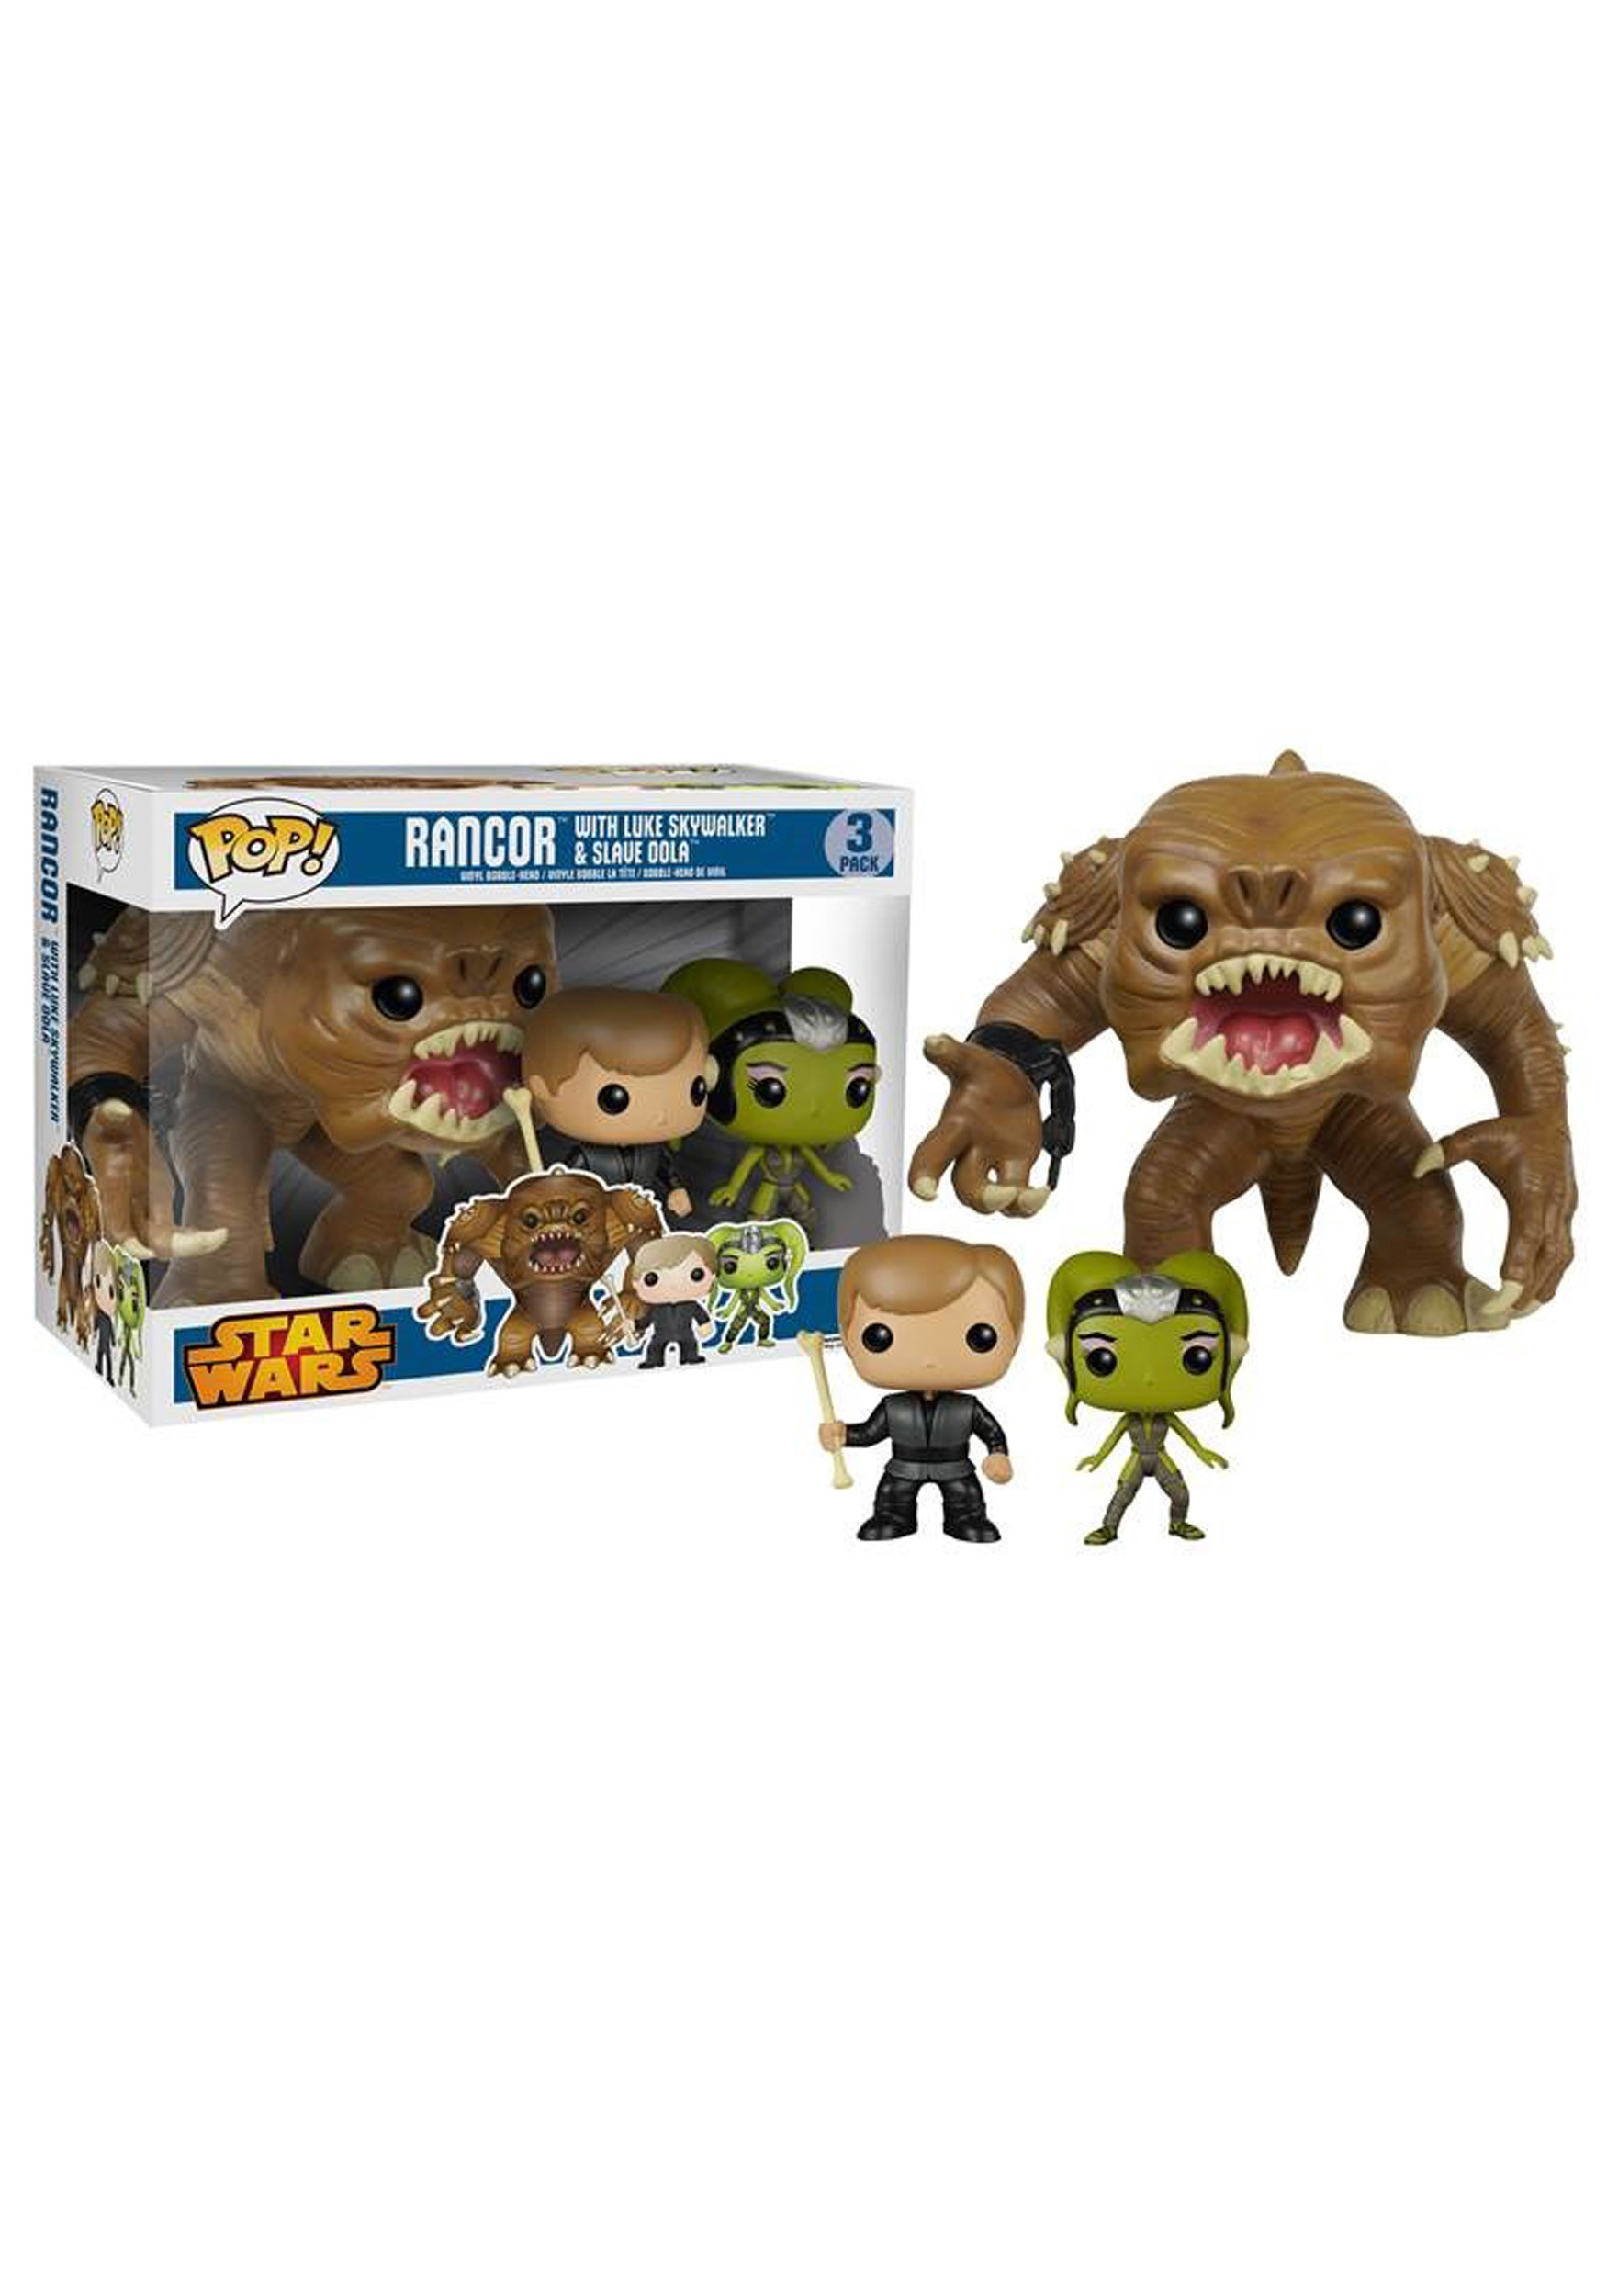 Funko POP Star Wars Rancor w/ Luke & Slave Oola 3pk DCSEP158902